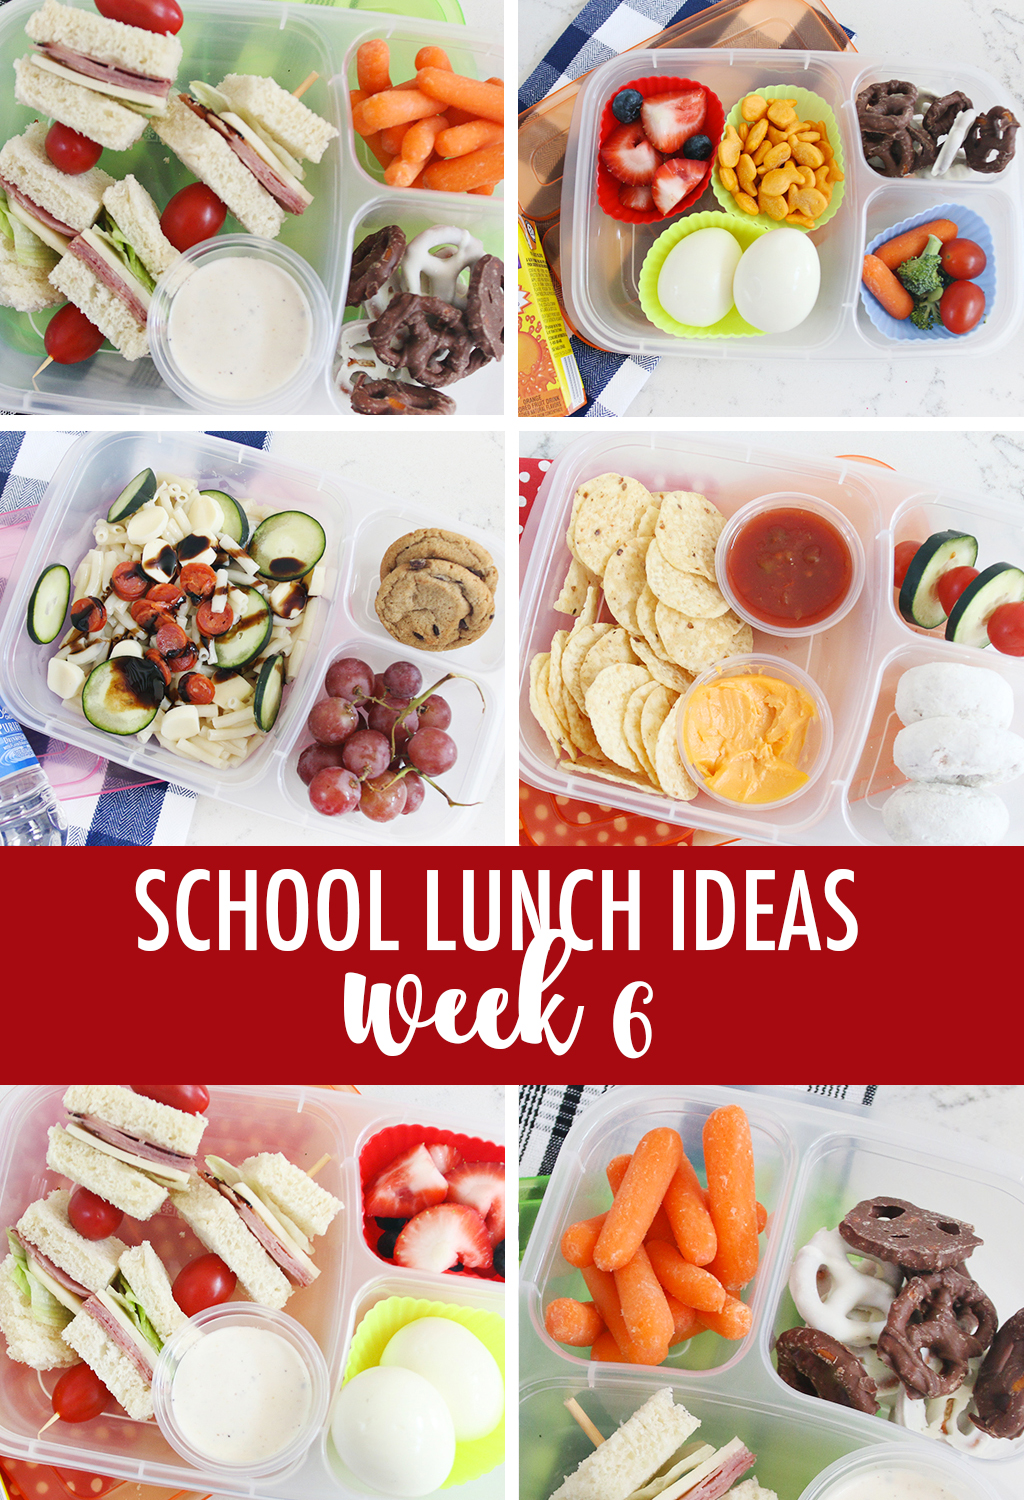 School Lunch Ideas Week 6